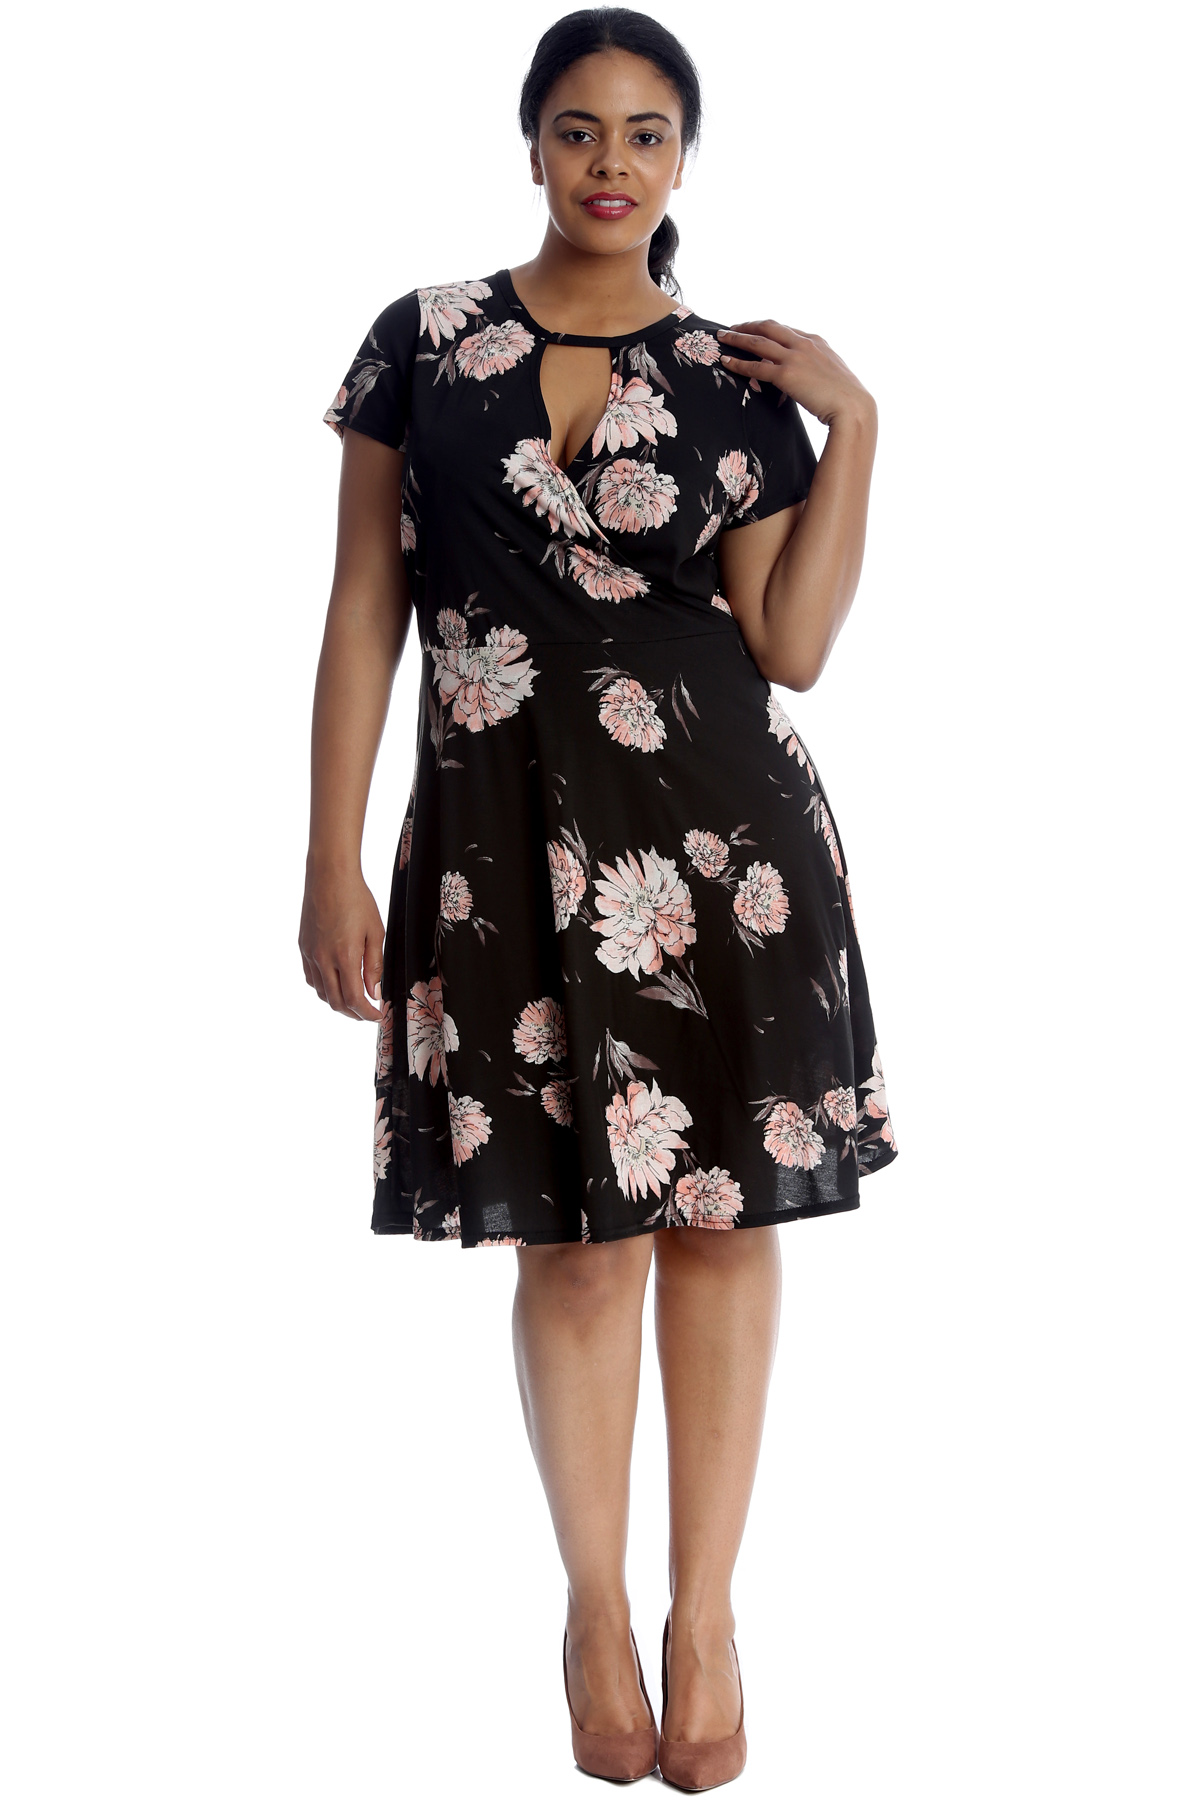 Details about New Women Dress Plus Size Ladies Floral Print Crossover  Skater Knee Long Fashion